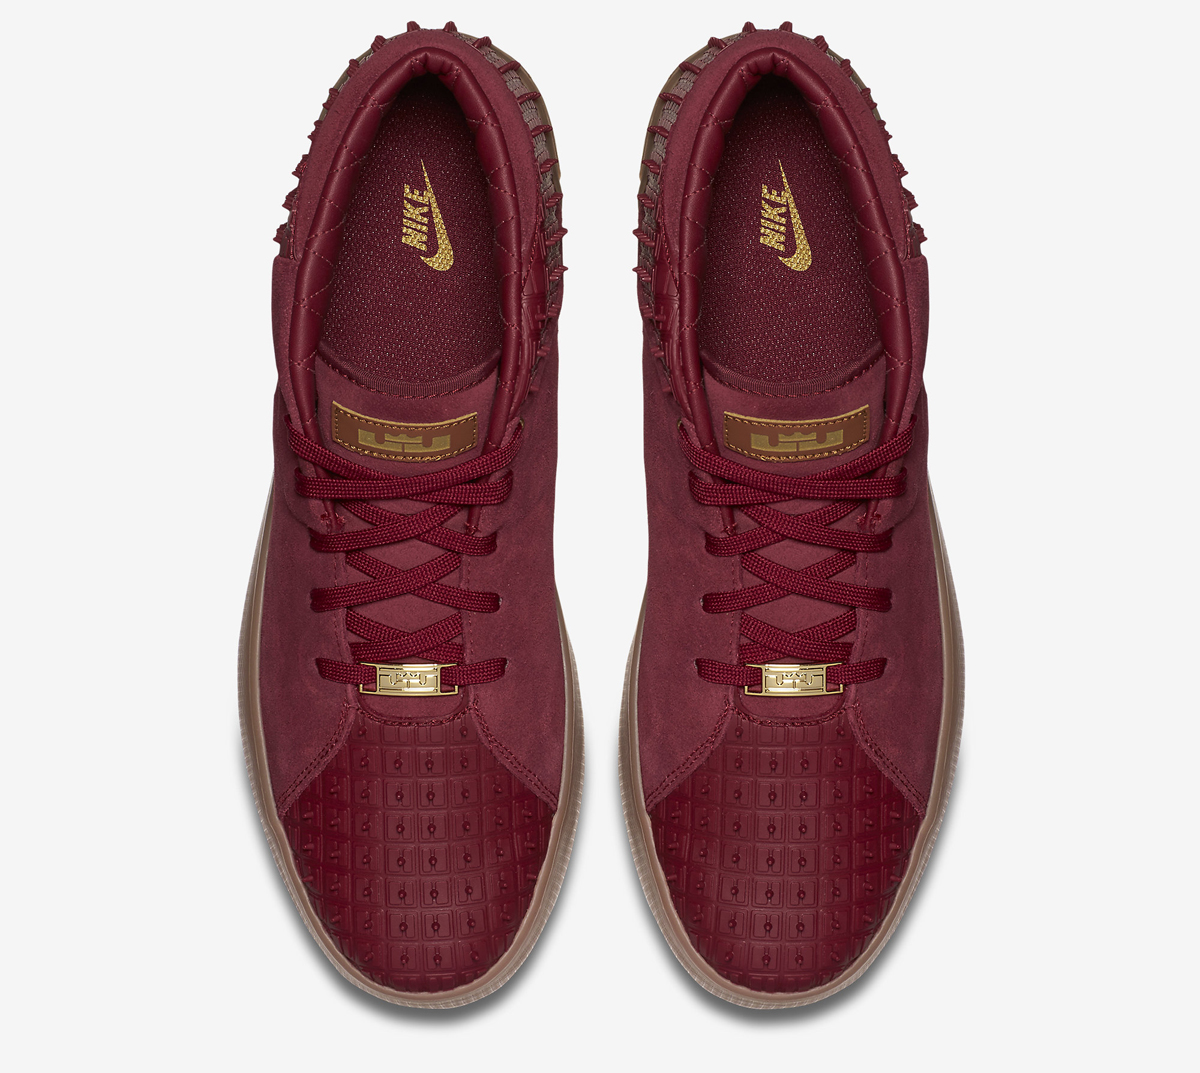 check out 022e7 762f5 Nike LeBron 13 NSW Lifestyle Release Date  11 12 15. Color  Team Red Metallic  Gold-Gum Medium Brown Style    806396-600. Price   130